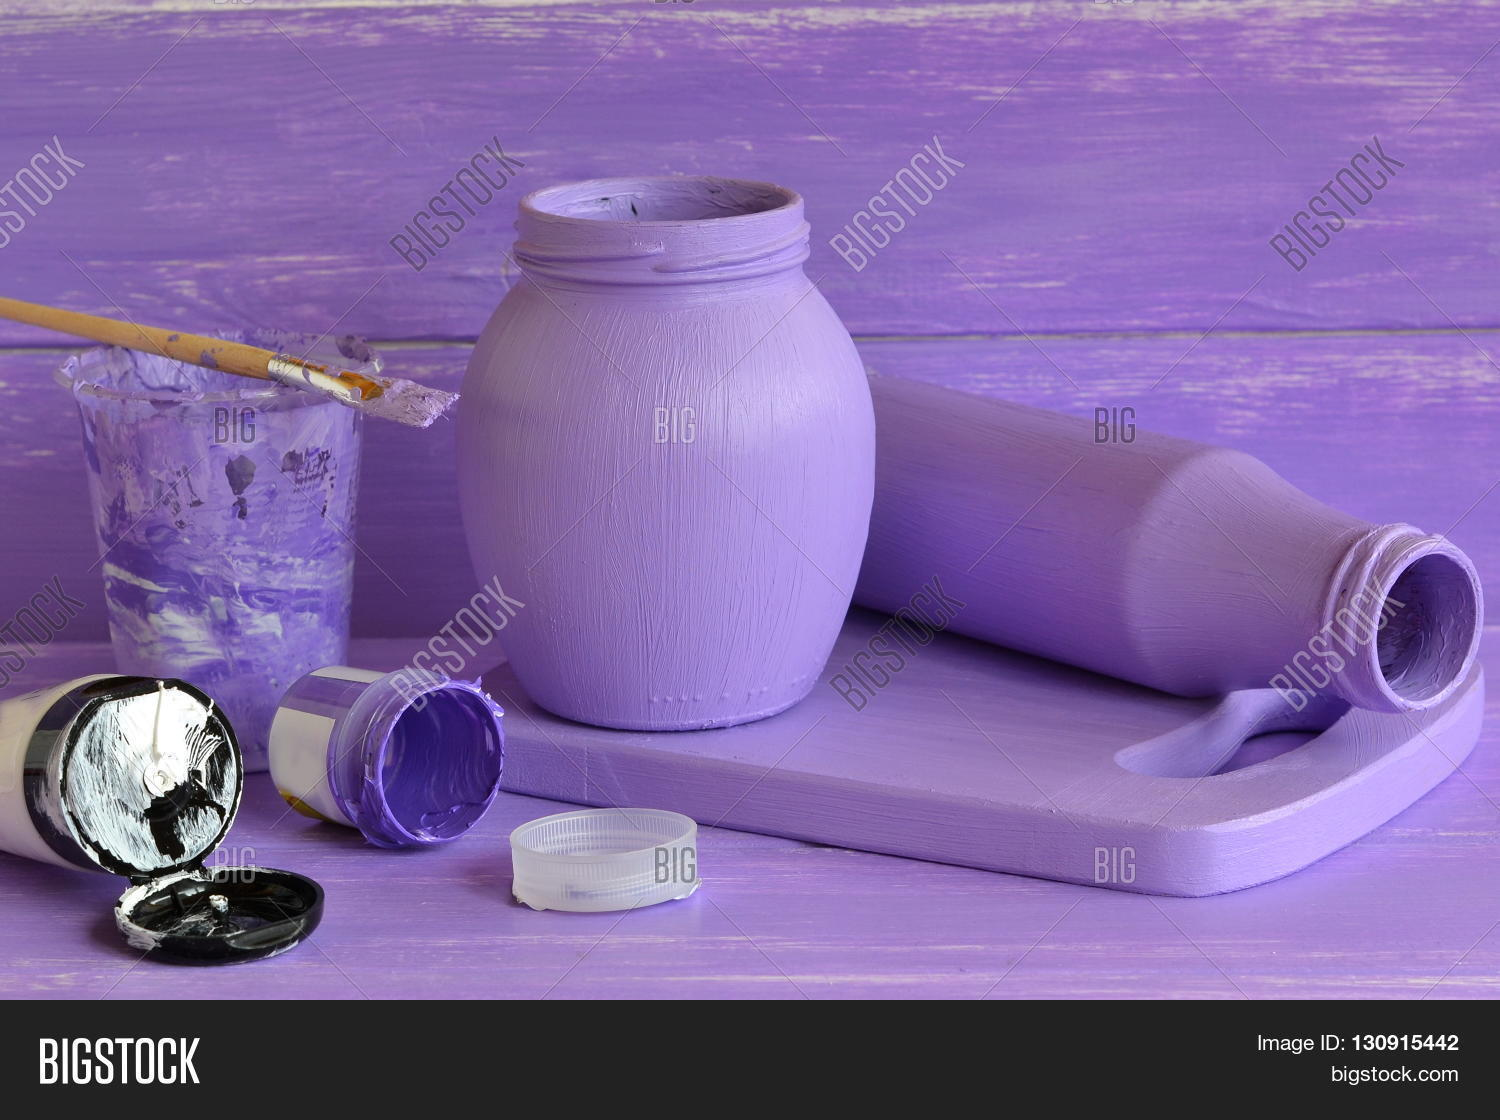 Painted glass jars tubes acrylic image photo bigstock for Decorative items by waste material